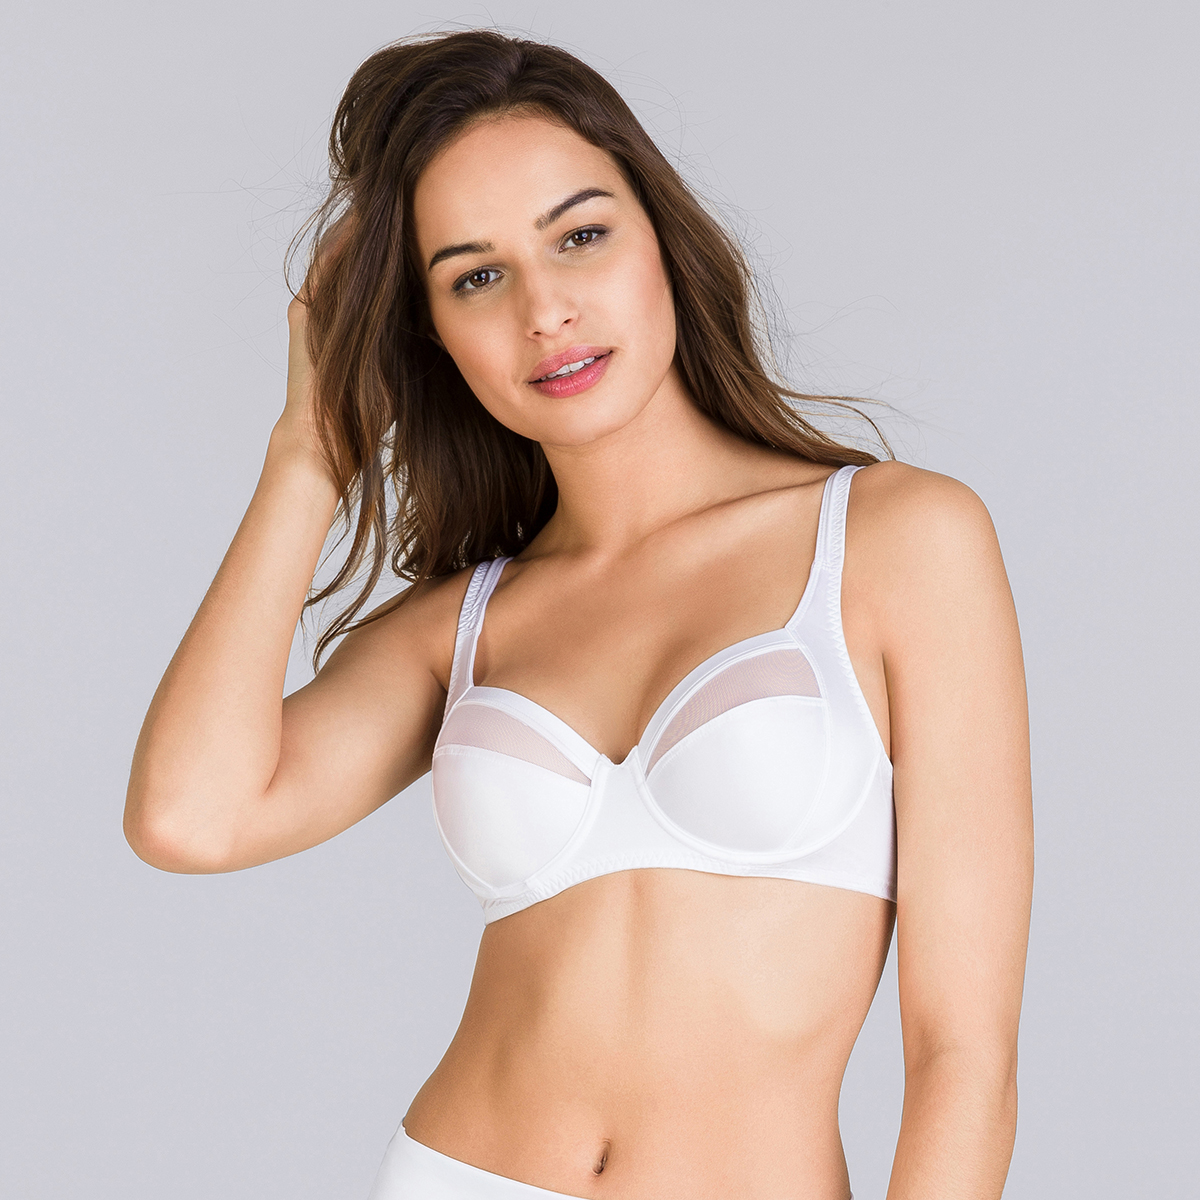 Reggiseno con ferretto bianco Perfect Silhouette, , PLAYTEX